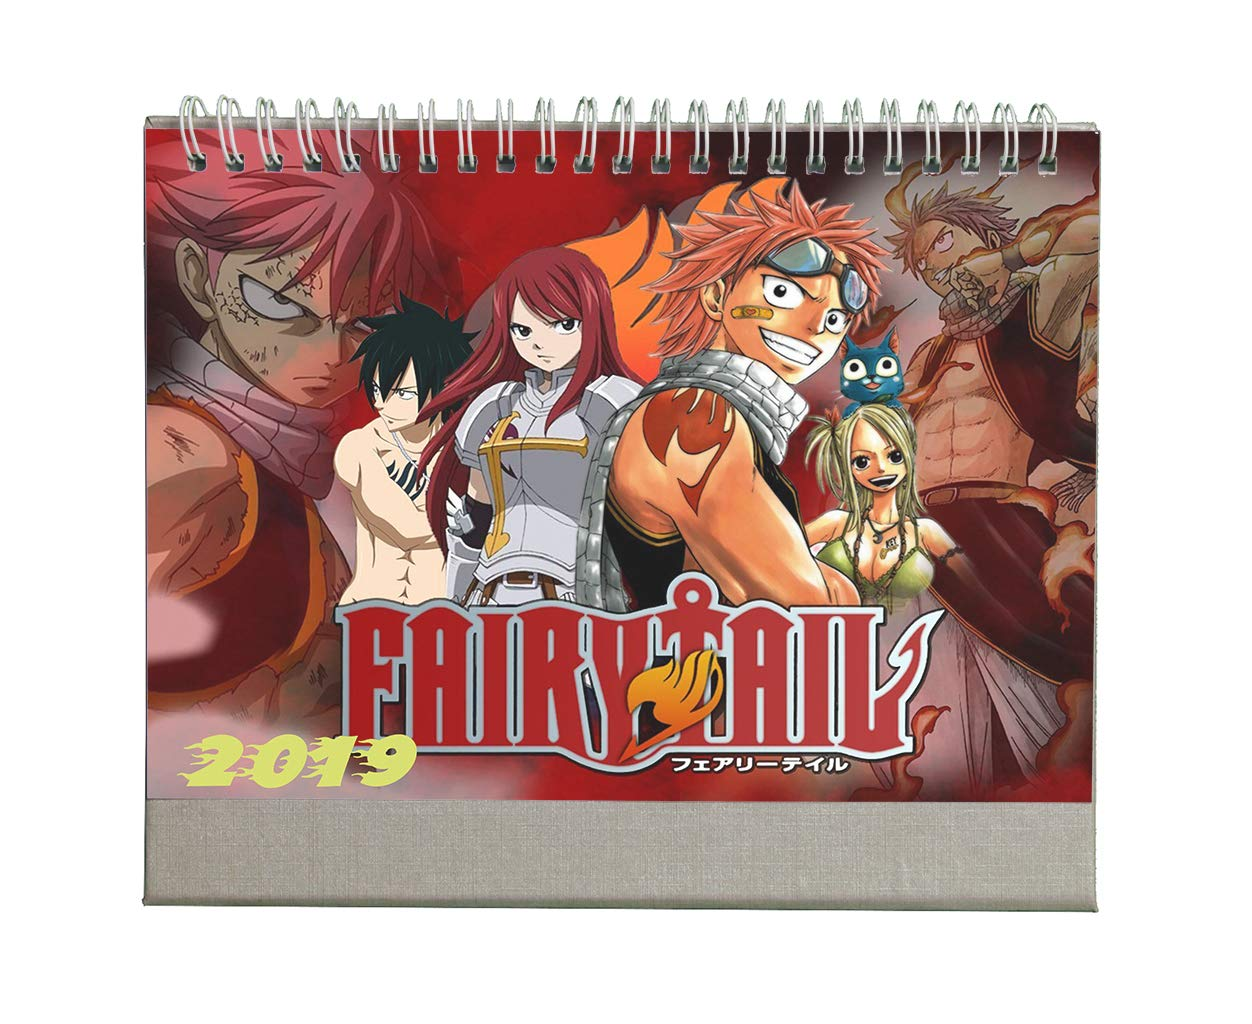 Fanstown Animation calendar 2019 collective edition desk calendar personalize style avaliable by Fanstown